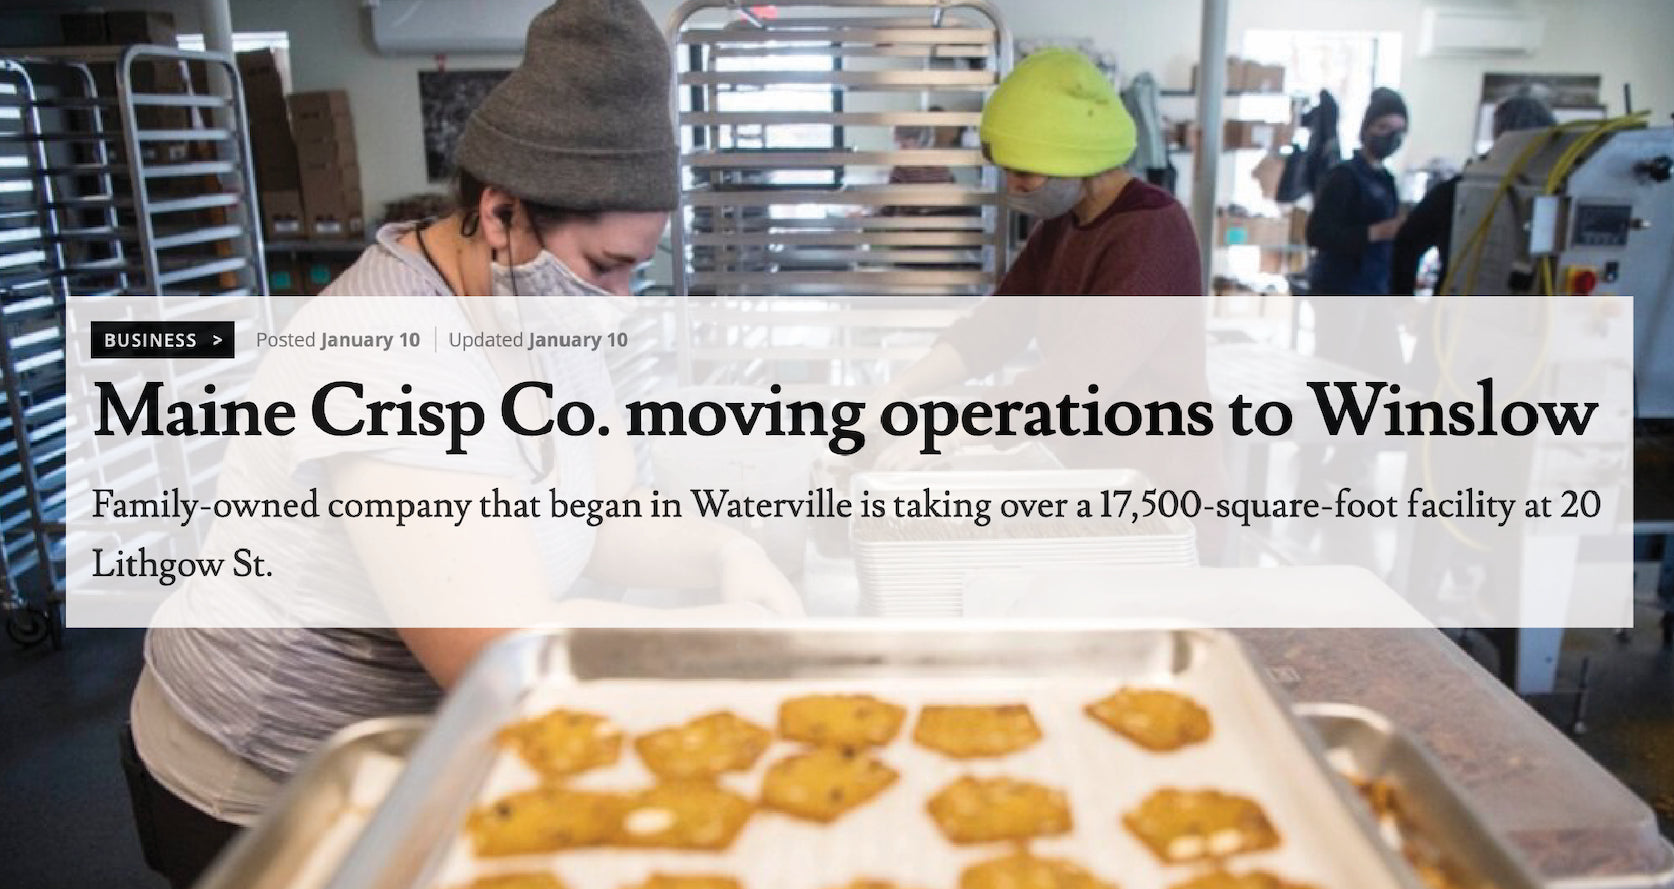 Maine Crisp Co. Moving Operations to Winslow